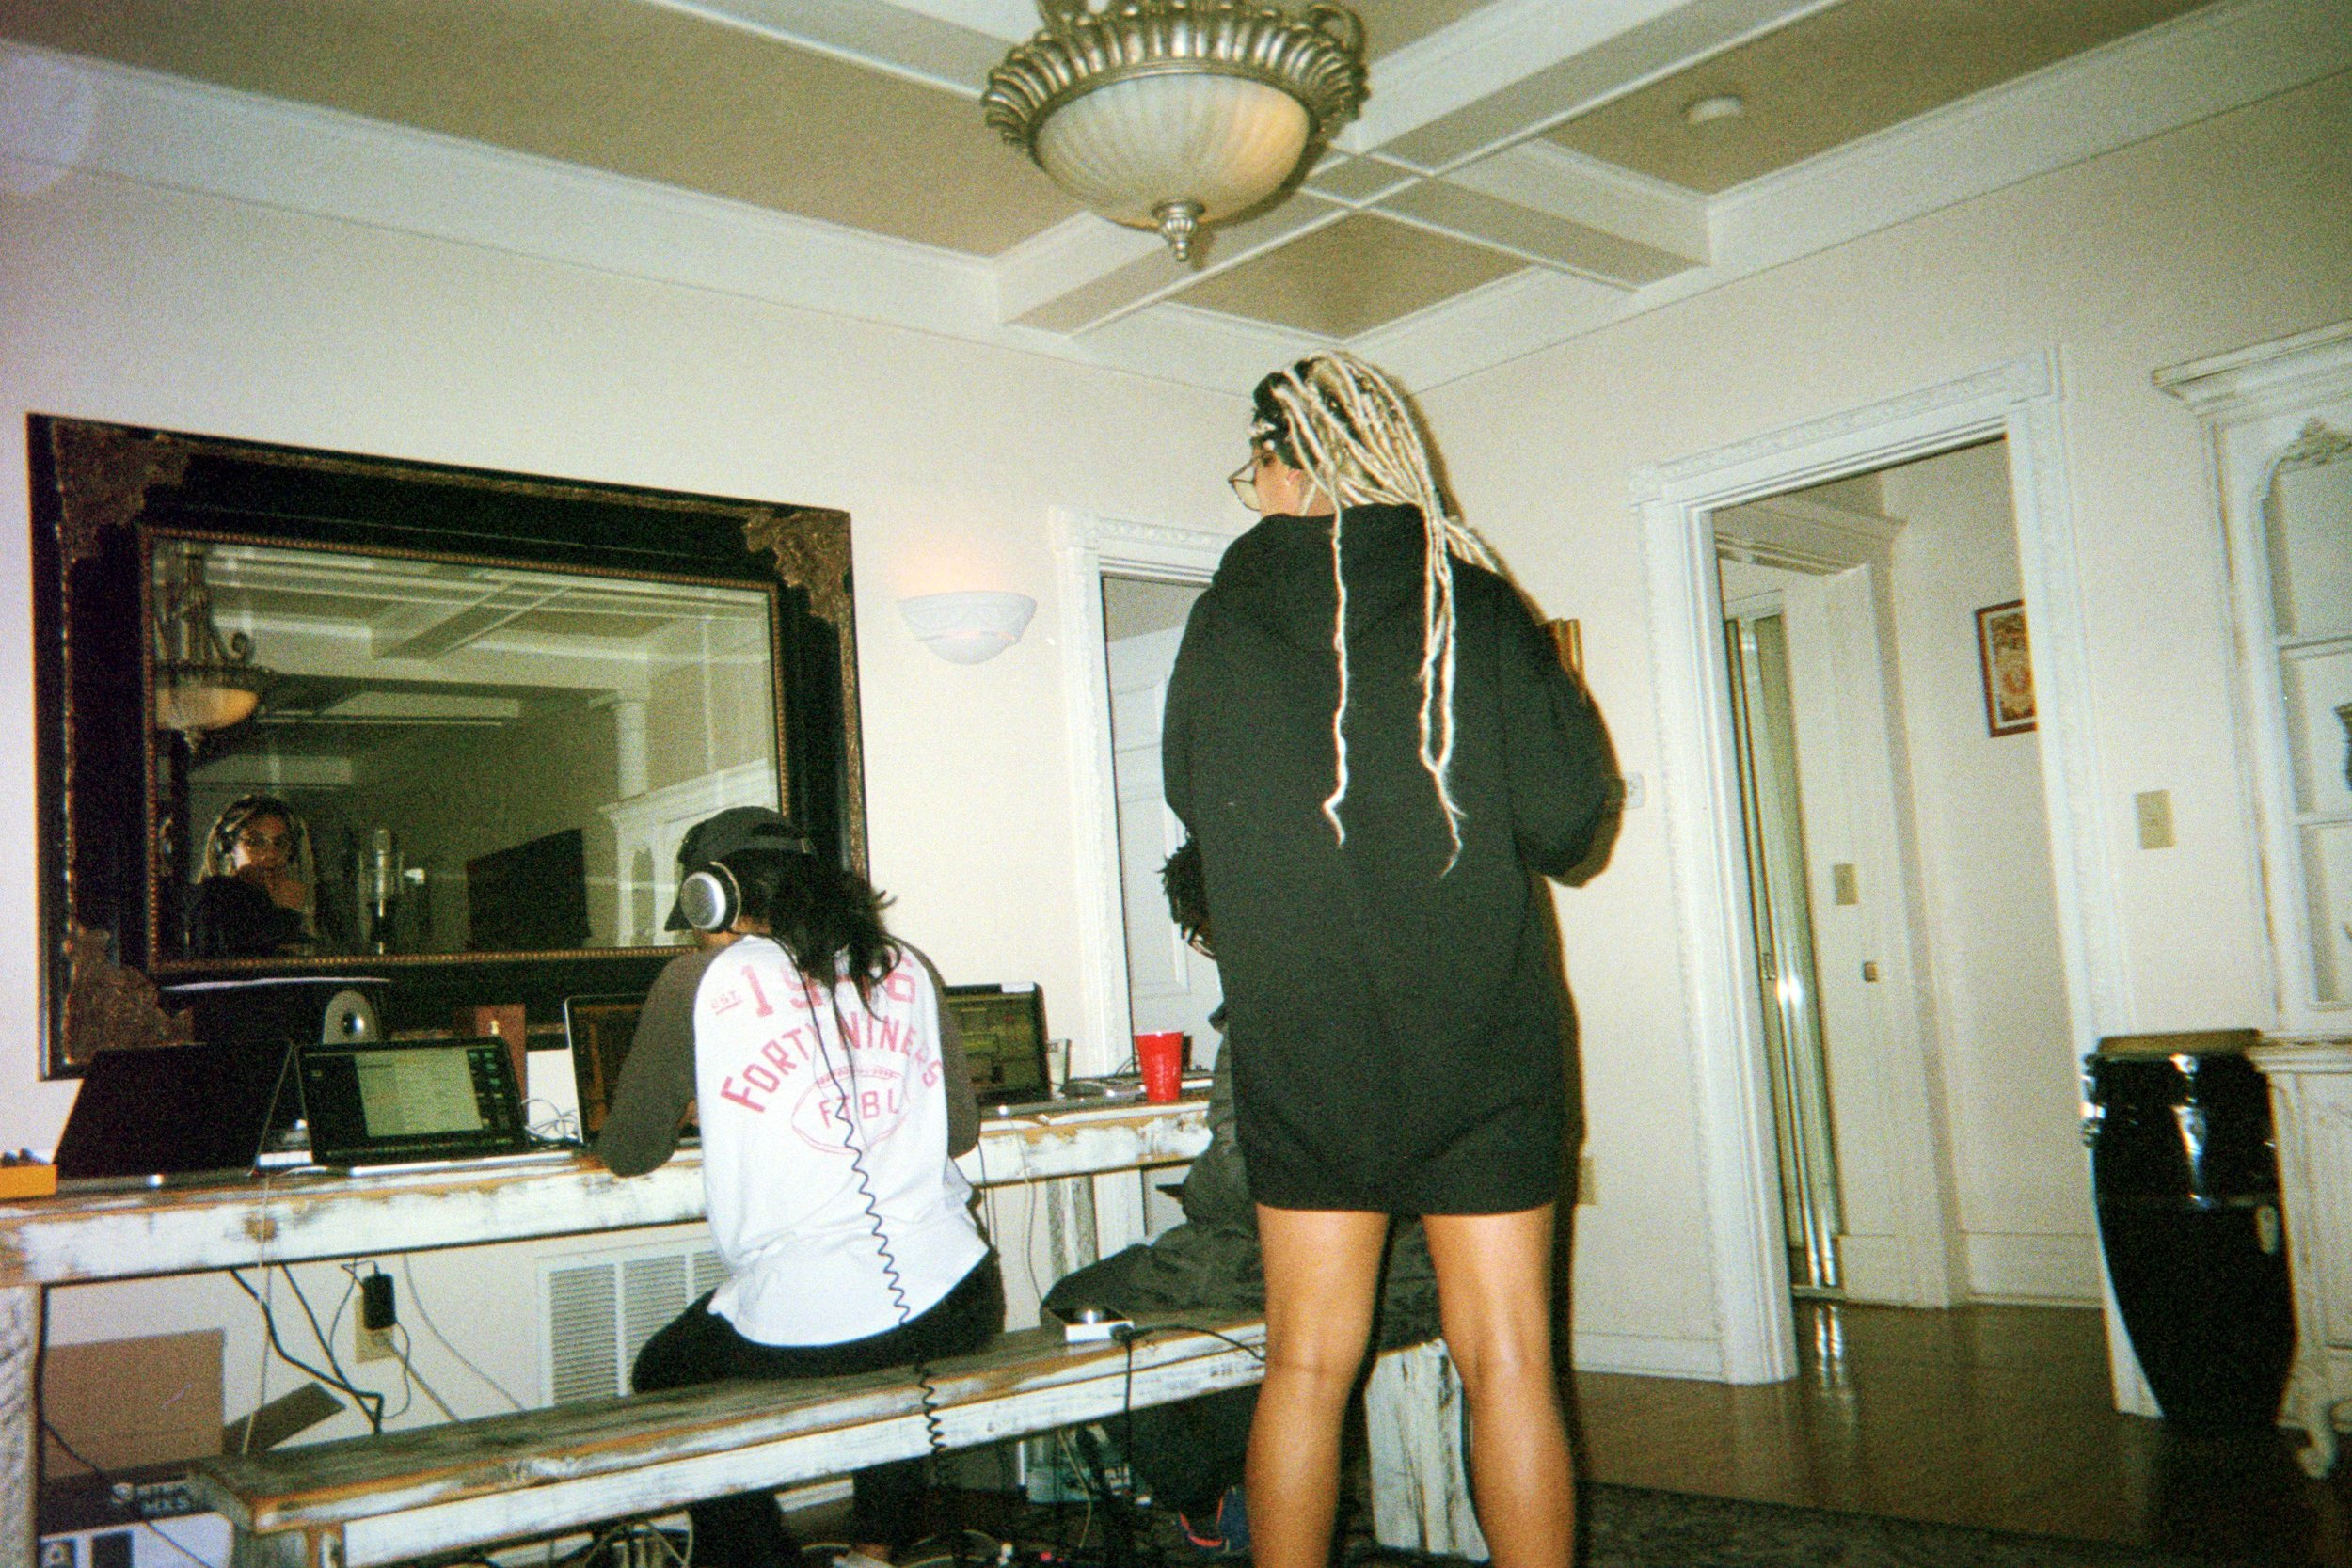 @hellobosco putting in that work